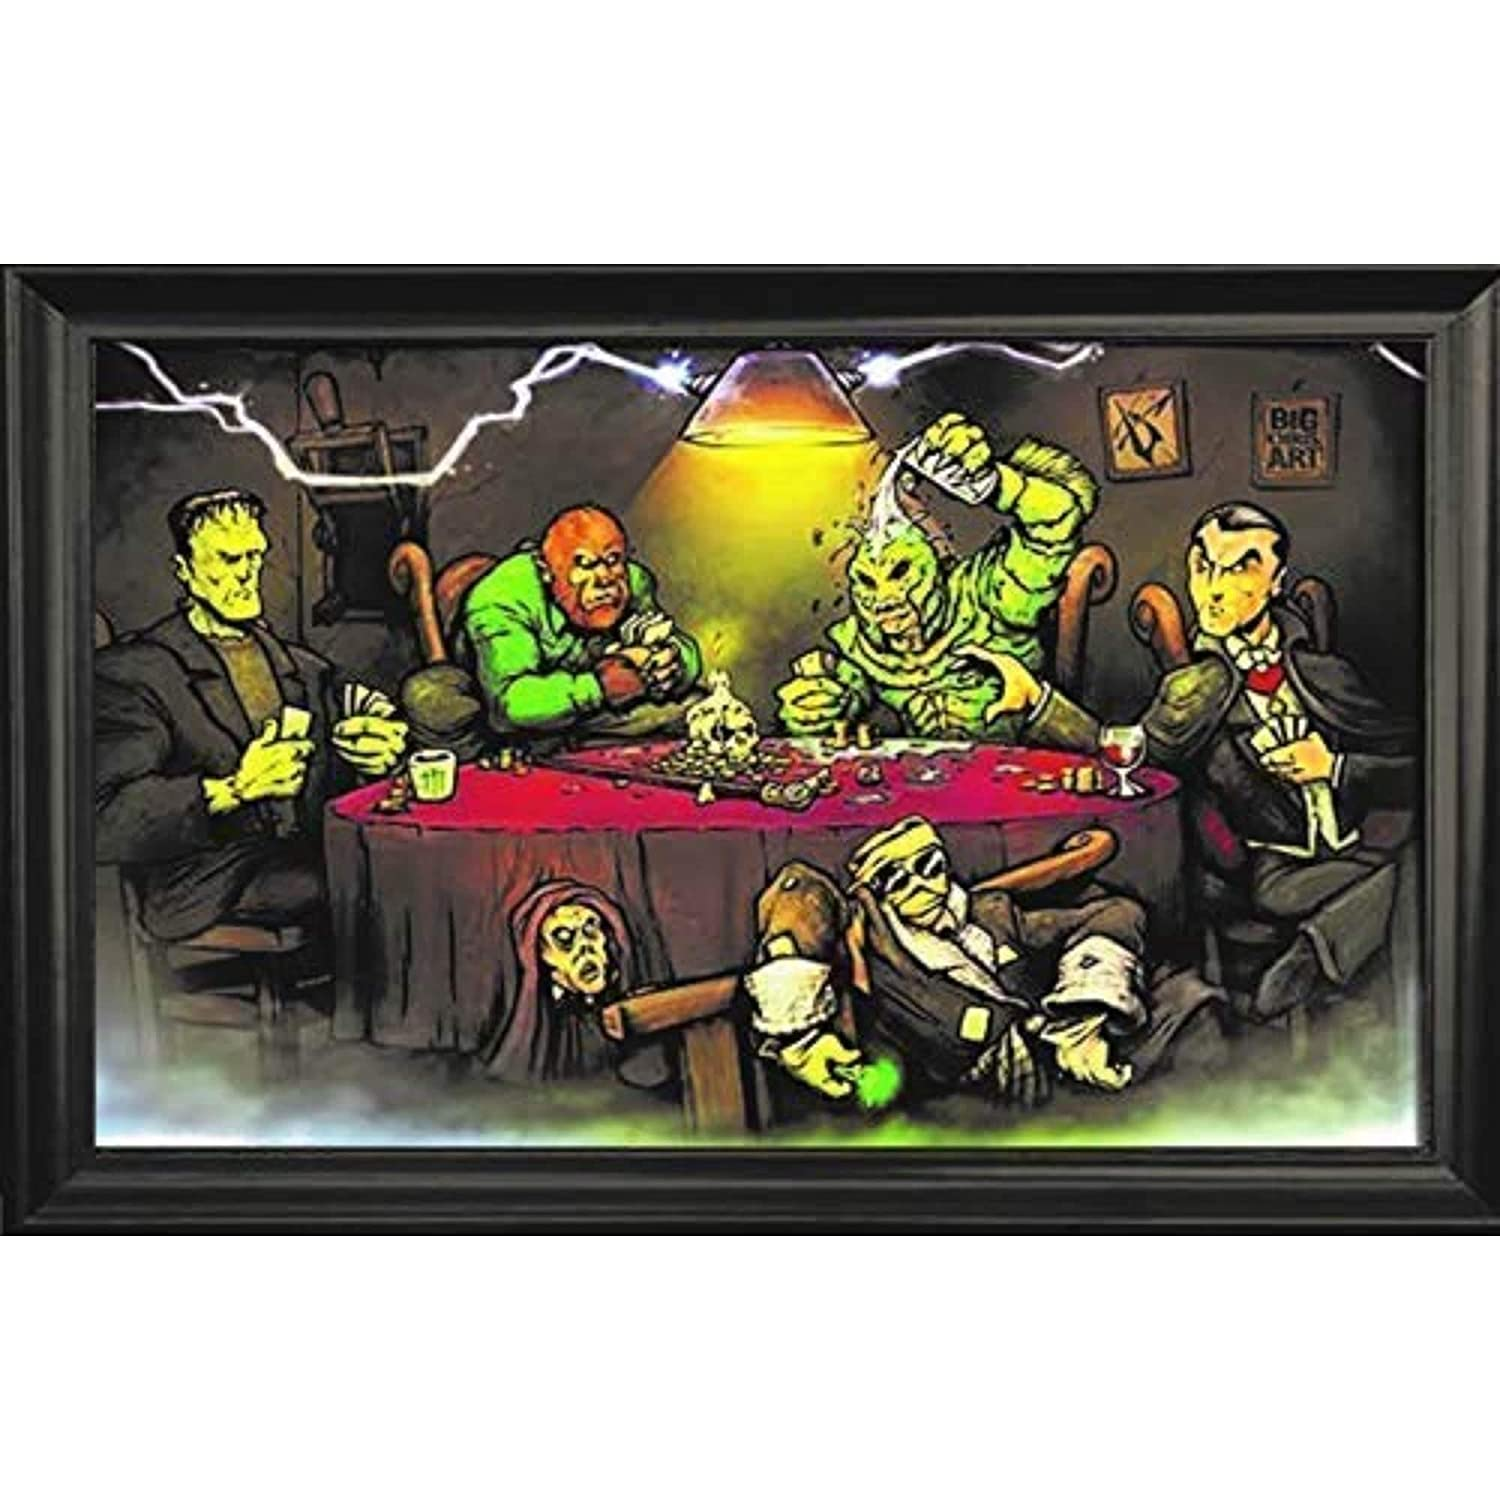 Monsters Playing Poker Wall Art Decor Framed Print | 36x24 Premium (Canvas/Painting Like) Textured Poster | Scary Horror Movie Picture & Artwork for ...